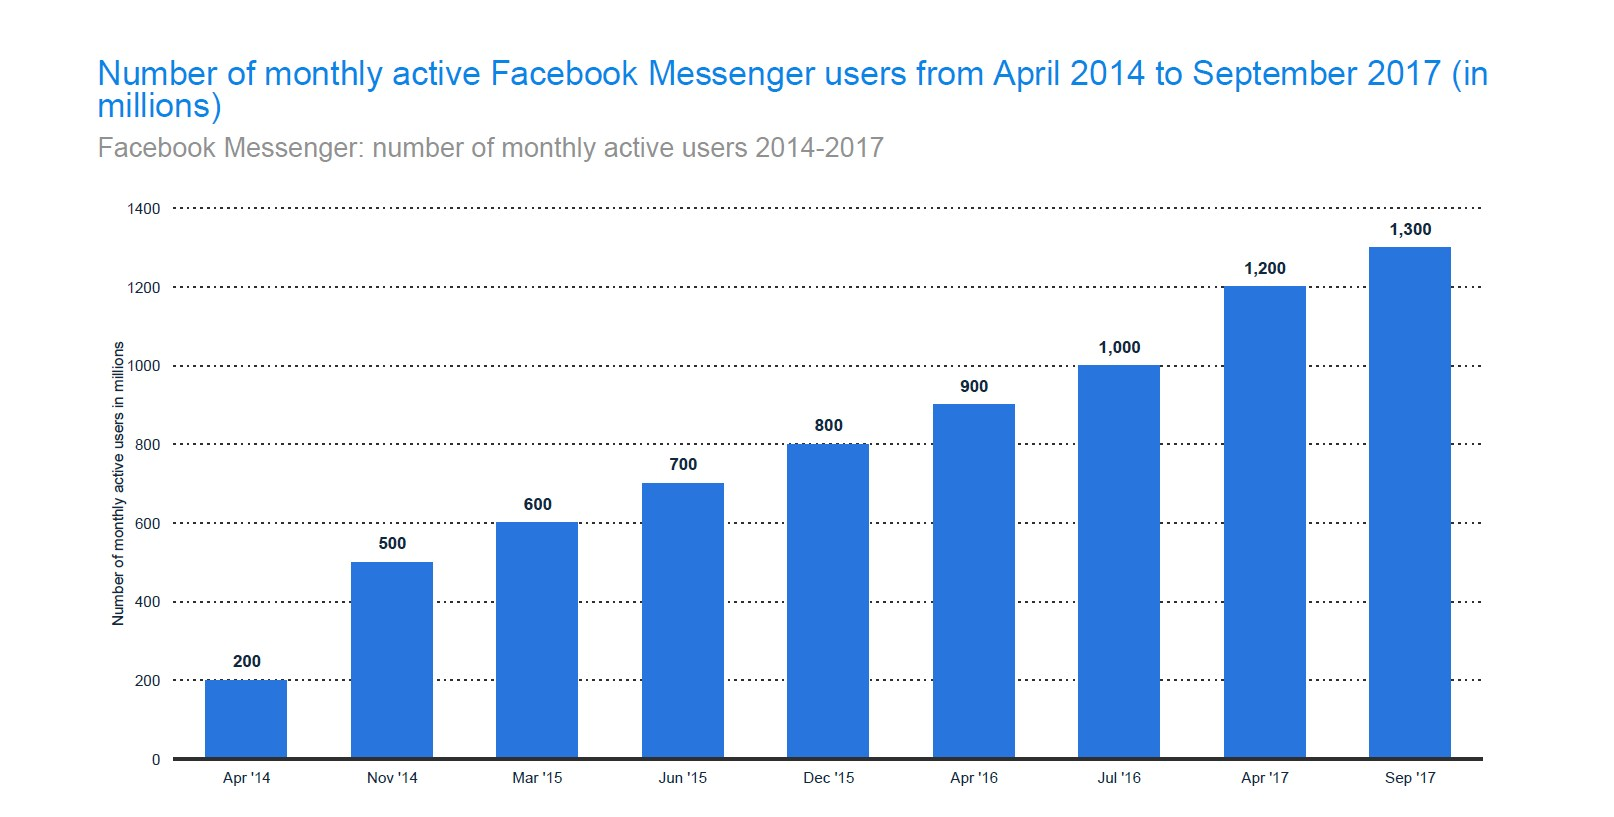 The number of people using Facebook Messenger doubled between 2015 and 2017